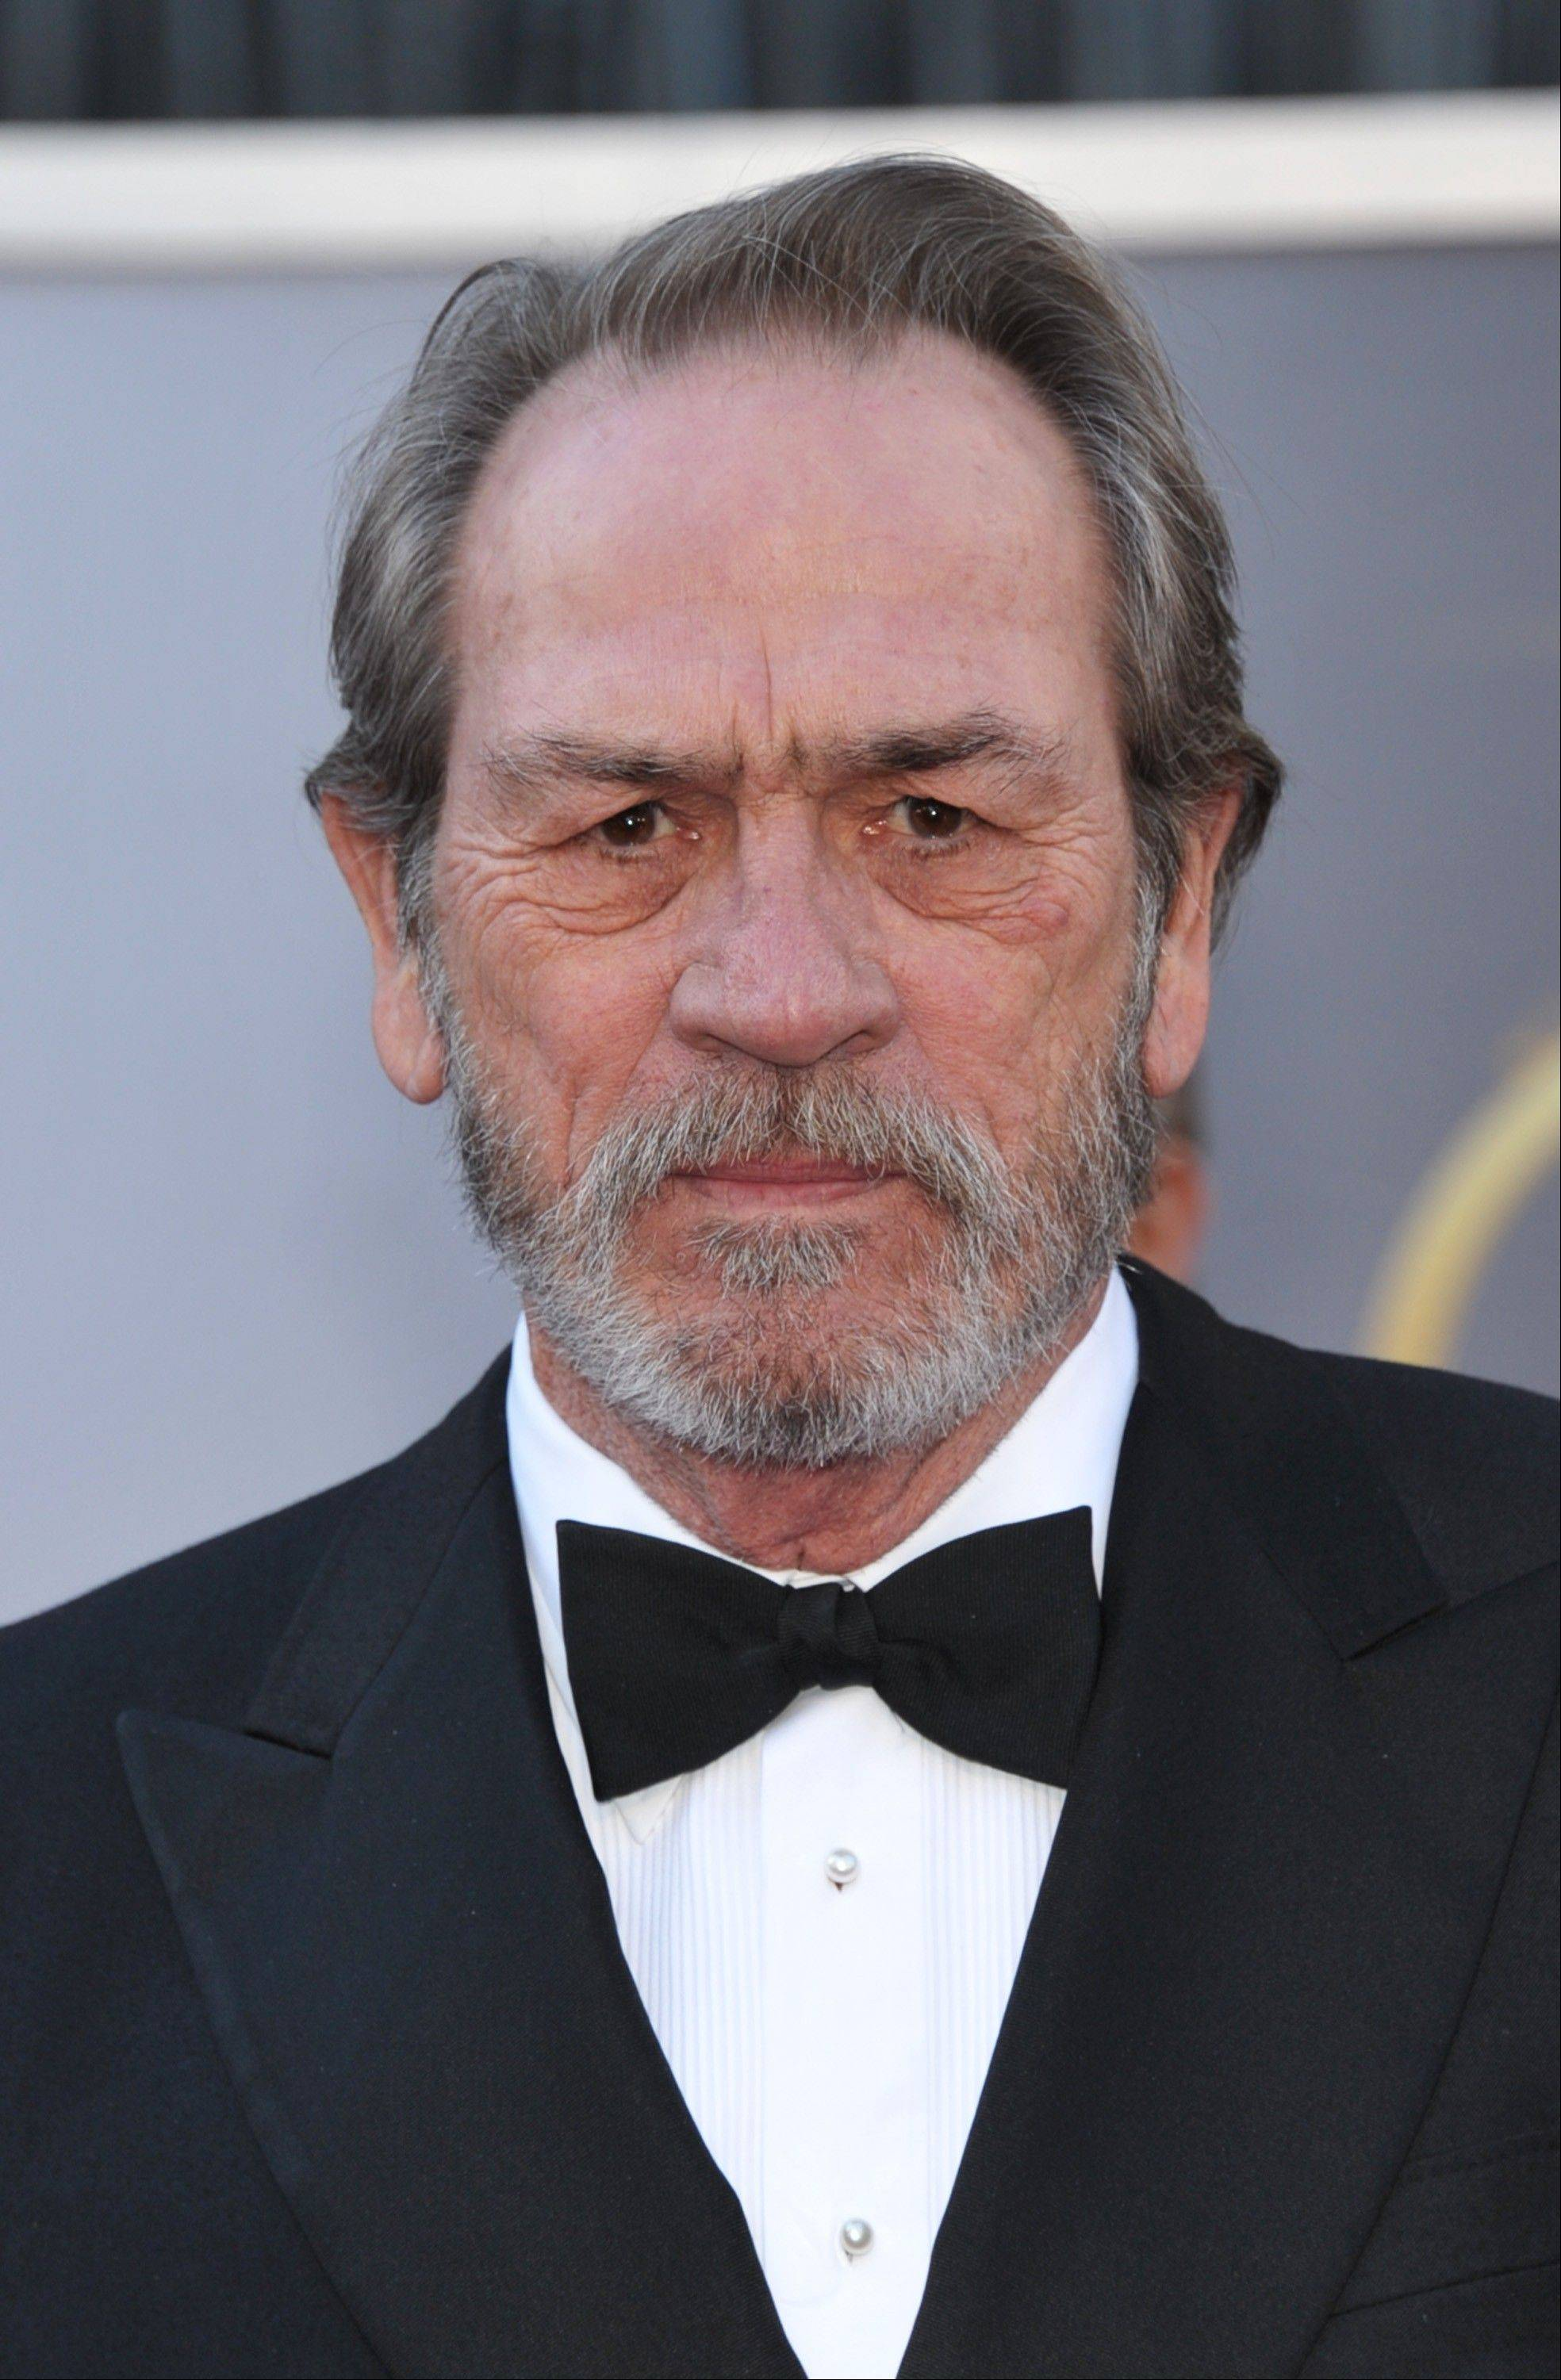 Obviously thrilled with just being nominated for an Oscar, actor Tommy Lee Jones arrives at the Dolby Theatre on Sunday.